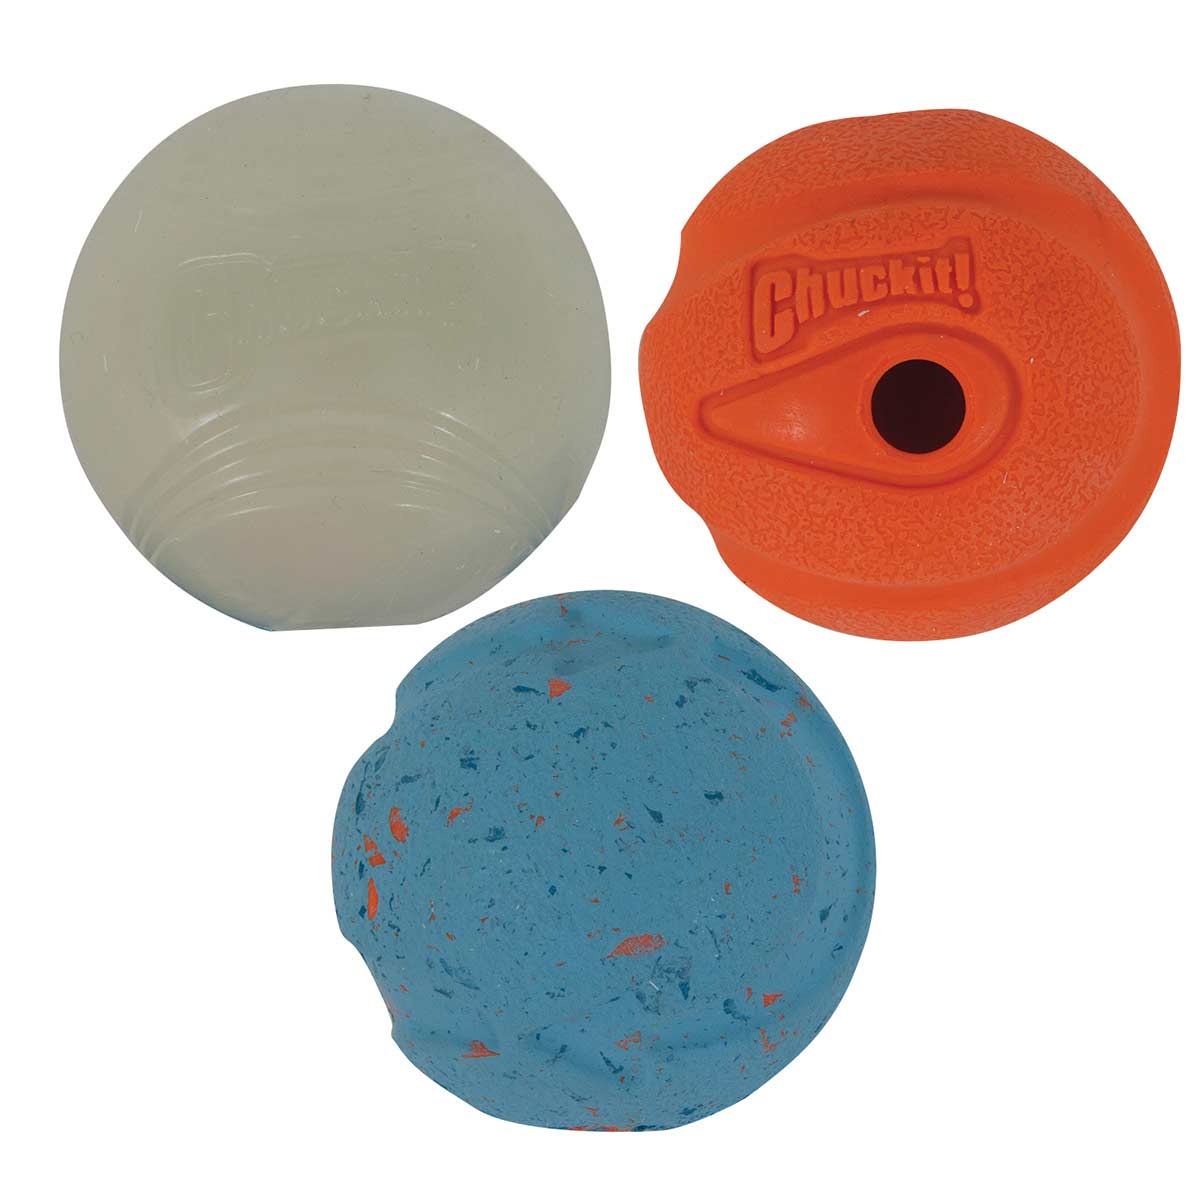 Medium Chuckit! Medley Ball Set for Fetch with Dogs